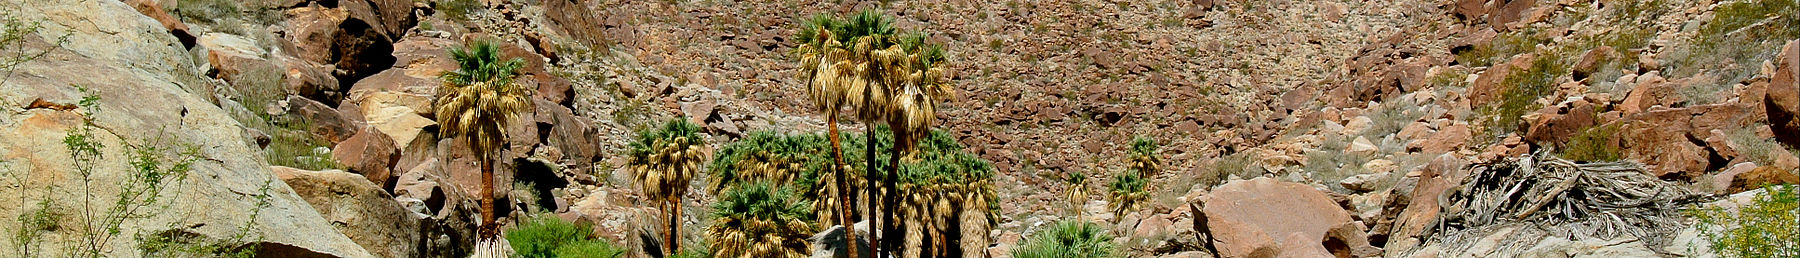 California fan palms at the park